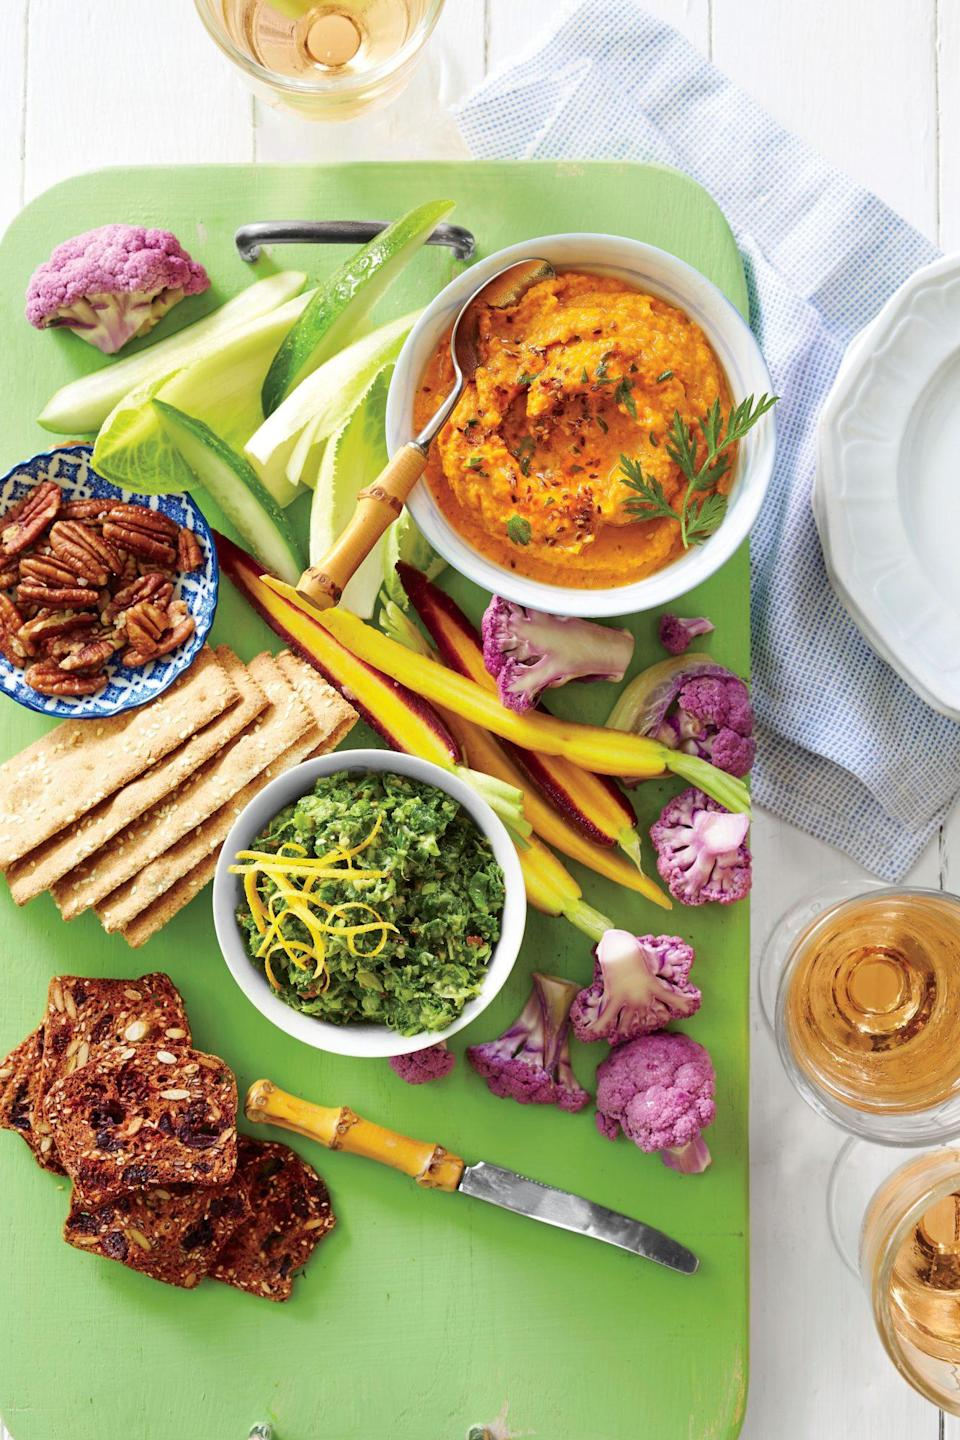 """<p><strong>Recipe: <a href=""""https://www.southernliving.com/recipes/carrot-hummus-recipe"""" rel=""""nofollow noopener"""" target=""""_blank"""" data-ylk=""""slk:Carrot Hummus"""" class=""""link rapid-noclick-resp"""">Carrot Hummus</a></strong></p> <p>Everyone will enjoy eating their carrots when you serve them in the form of a delicious dip.</p>"""